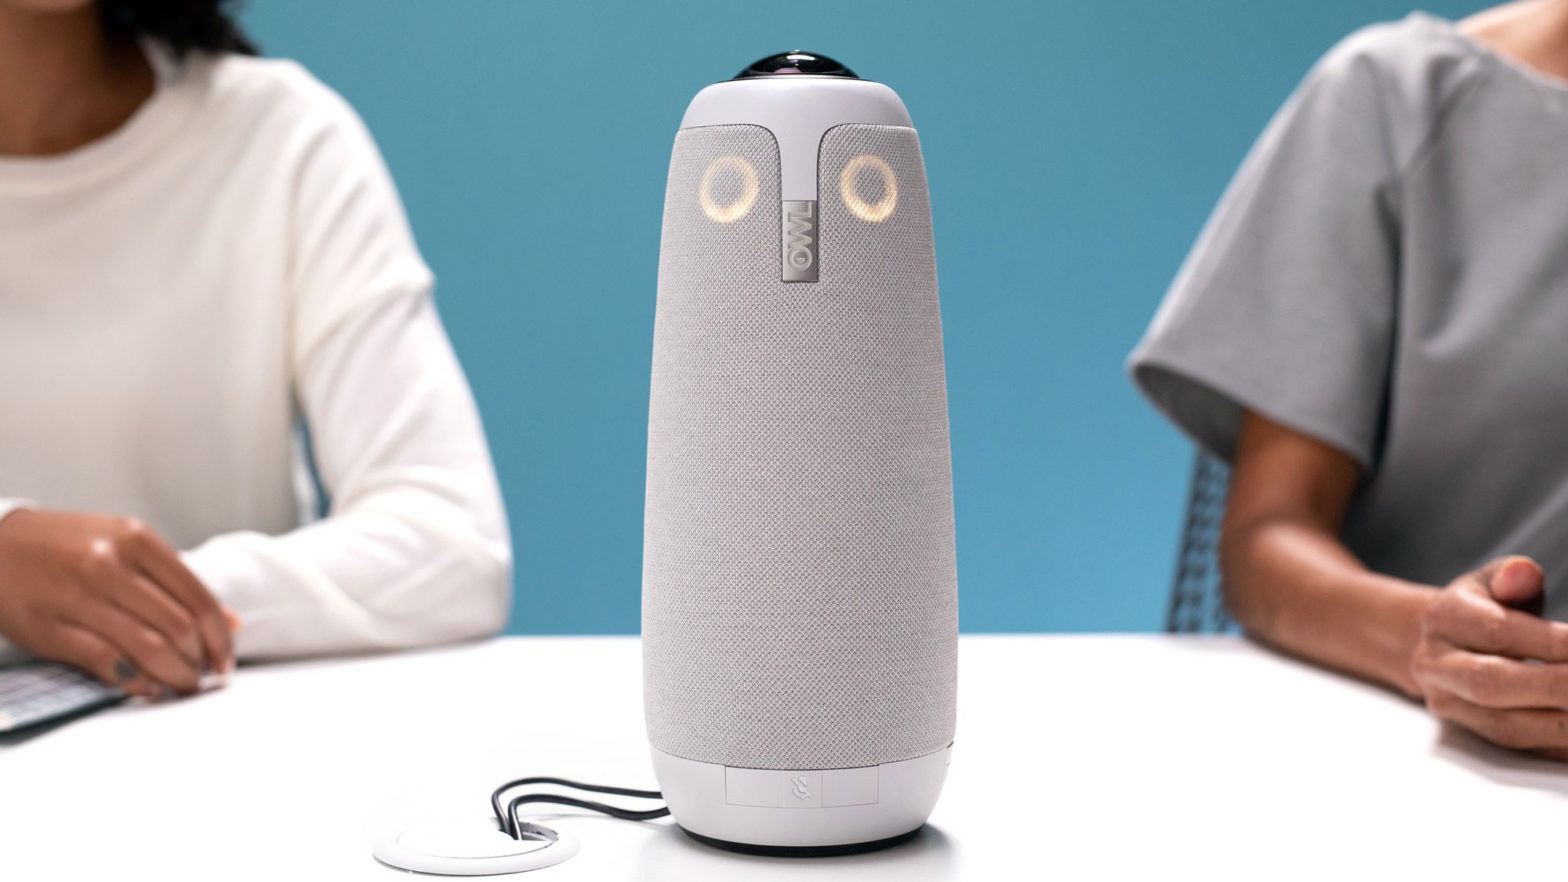 Meeting Owl Pro 360-degree Conference Camera